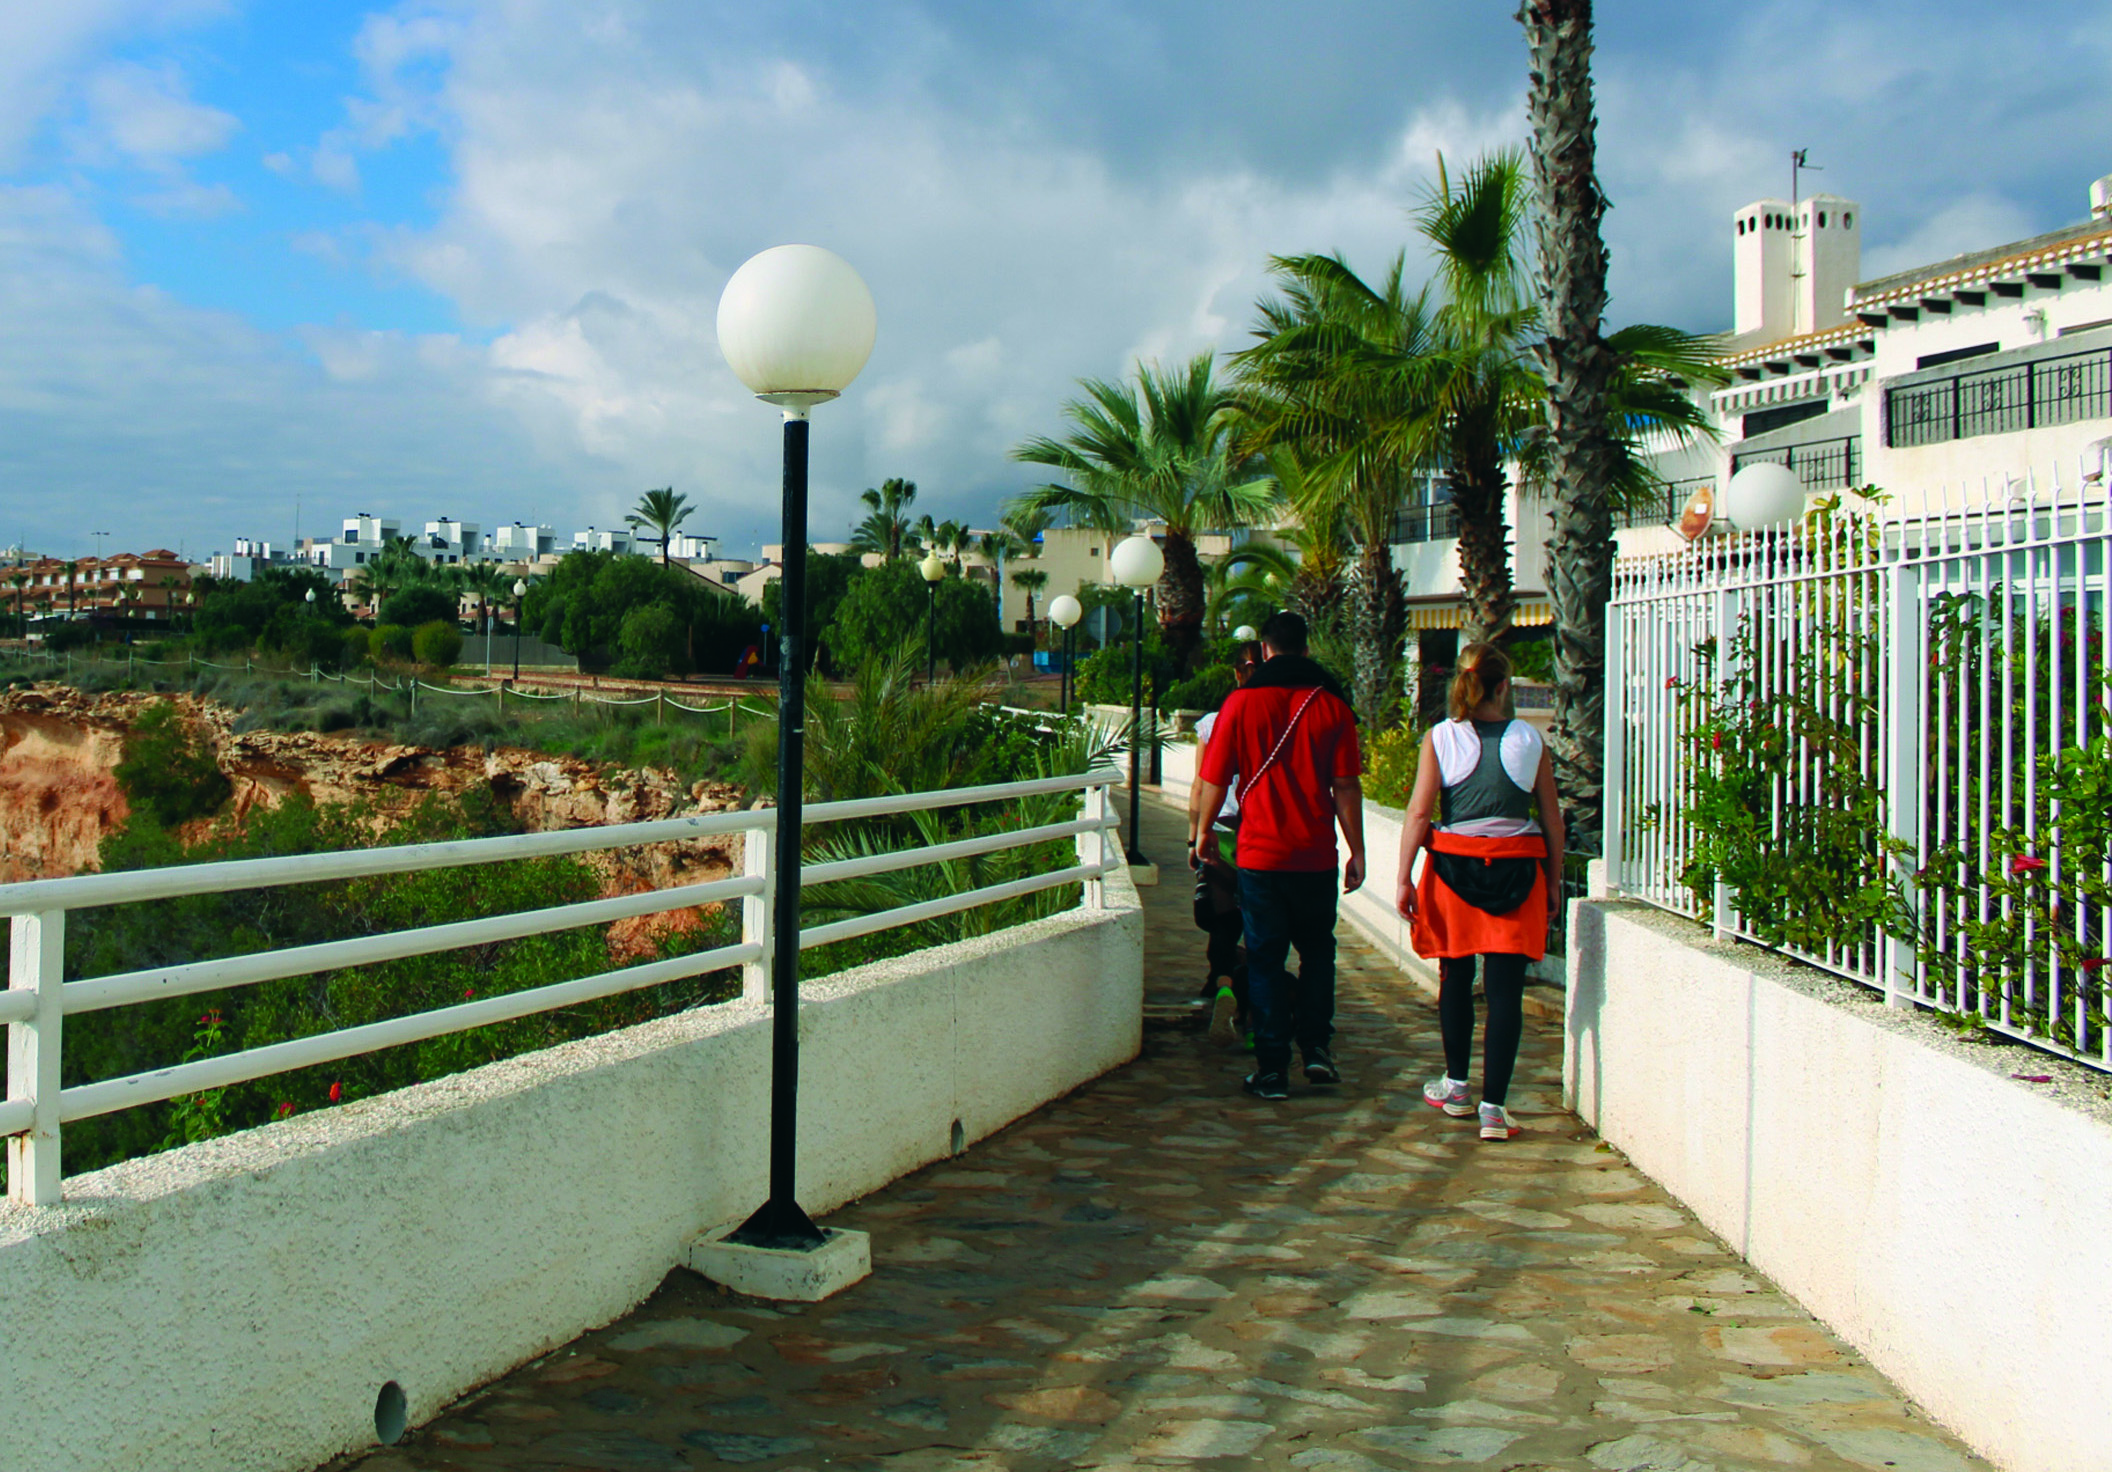 Future Of Cabo Roig Walkway Remains Uncertain The Leader Newspaper # Muebles Dous Murcia